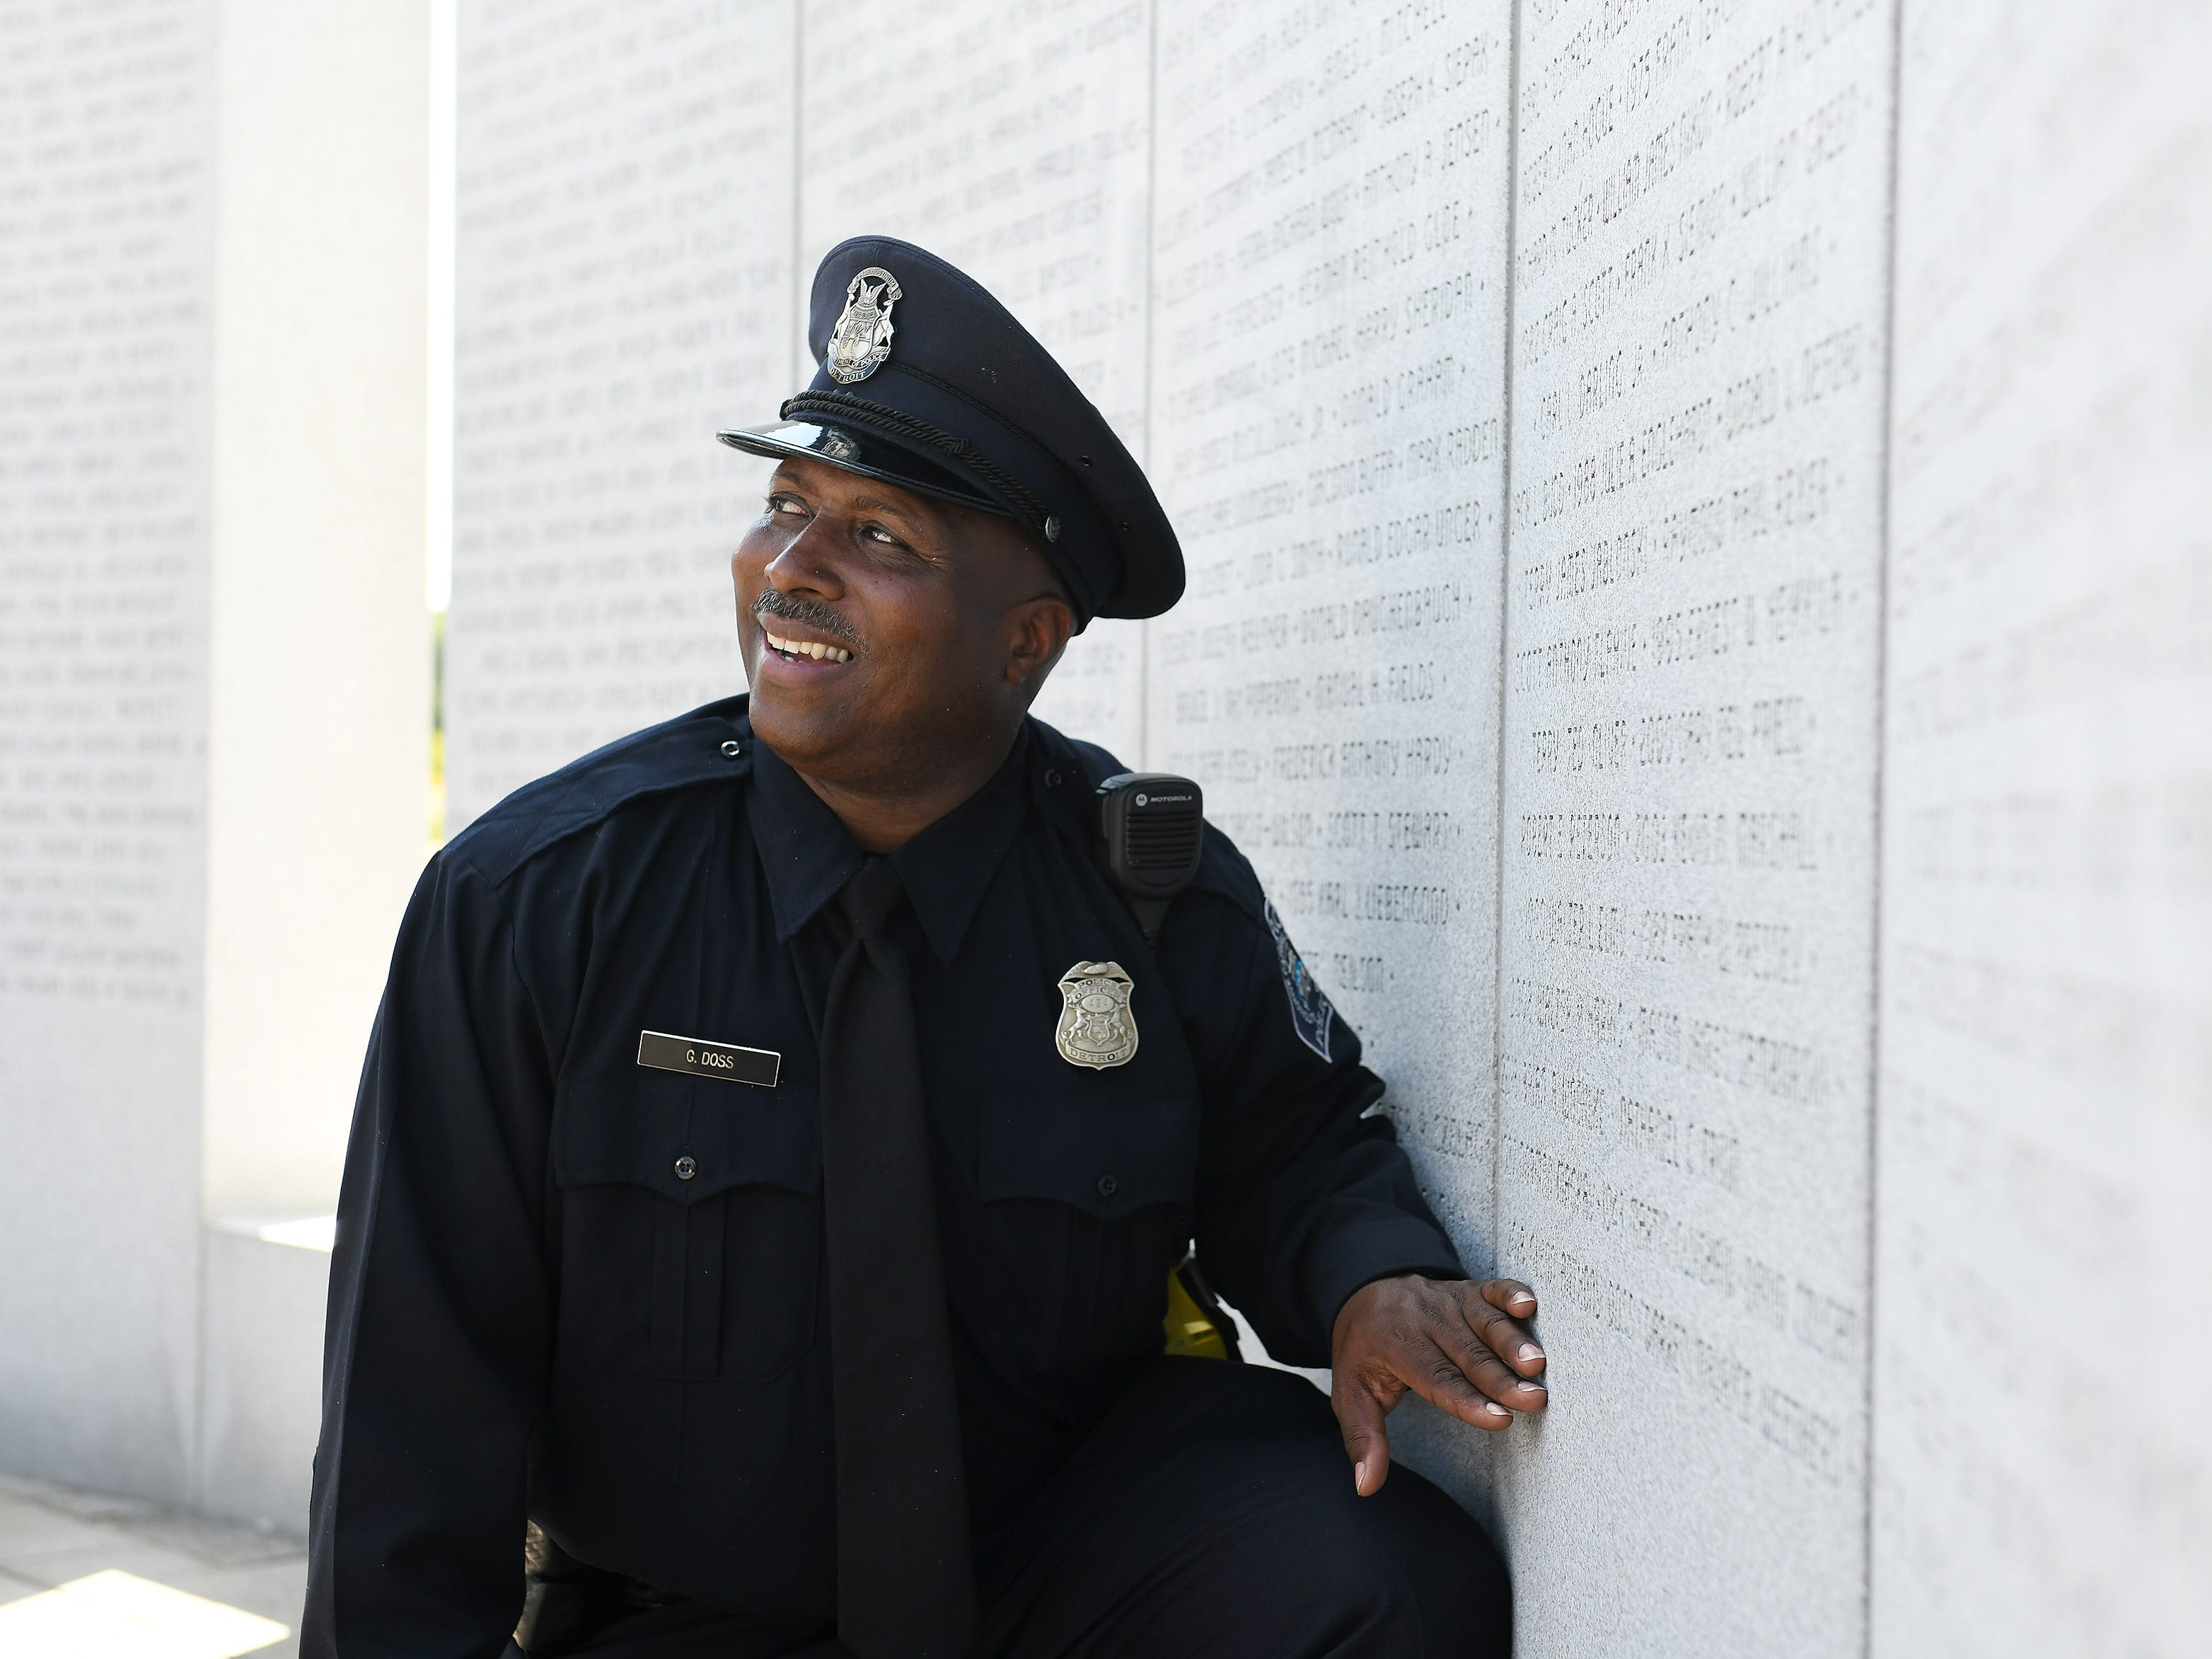 After the ceremony, Detroit police officer Glenn Doss Sr. is photographed where his son's name, officer Glenn Anthony Doss, is etched on the memorial.